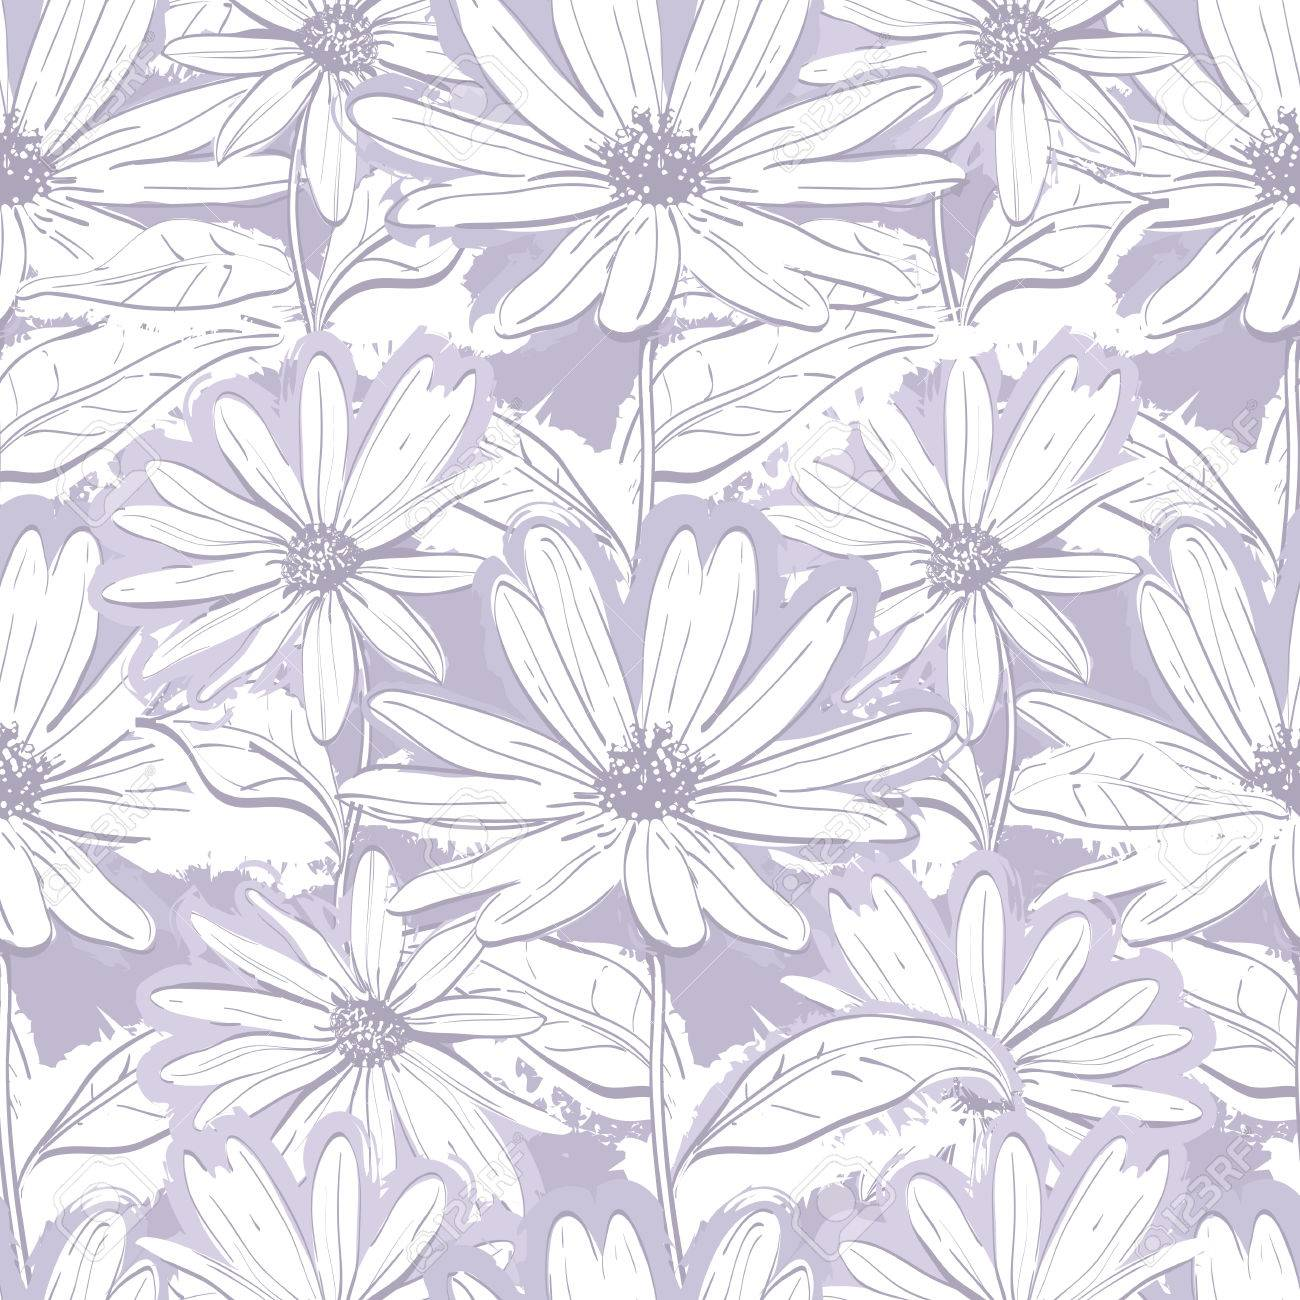 Monochrome Lilac Gray Floral Wallpaper Seamless Pattern Of